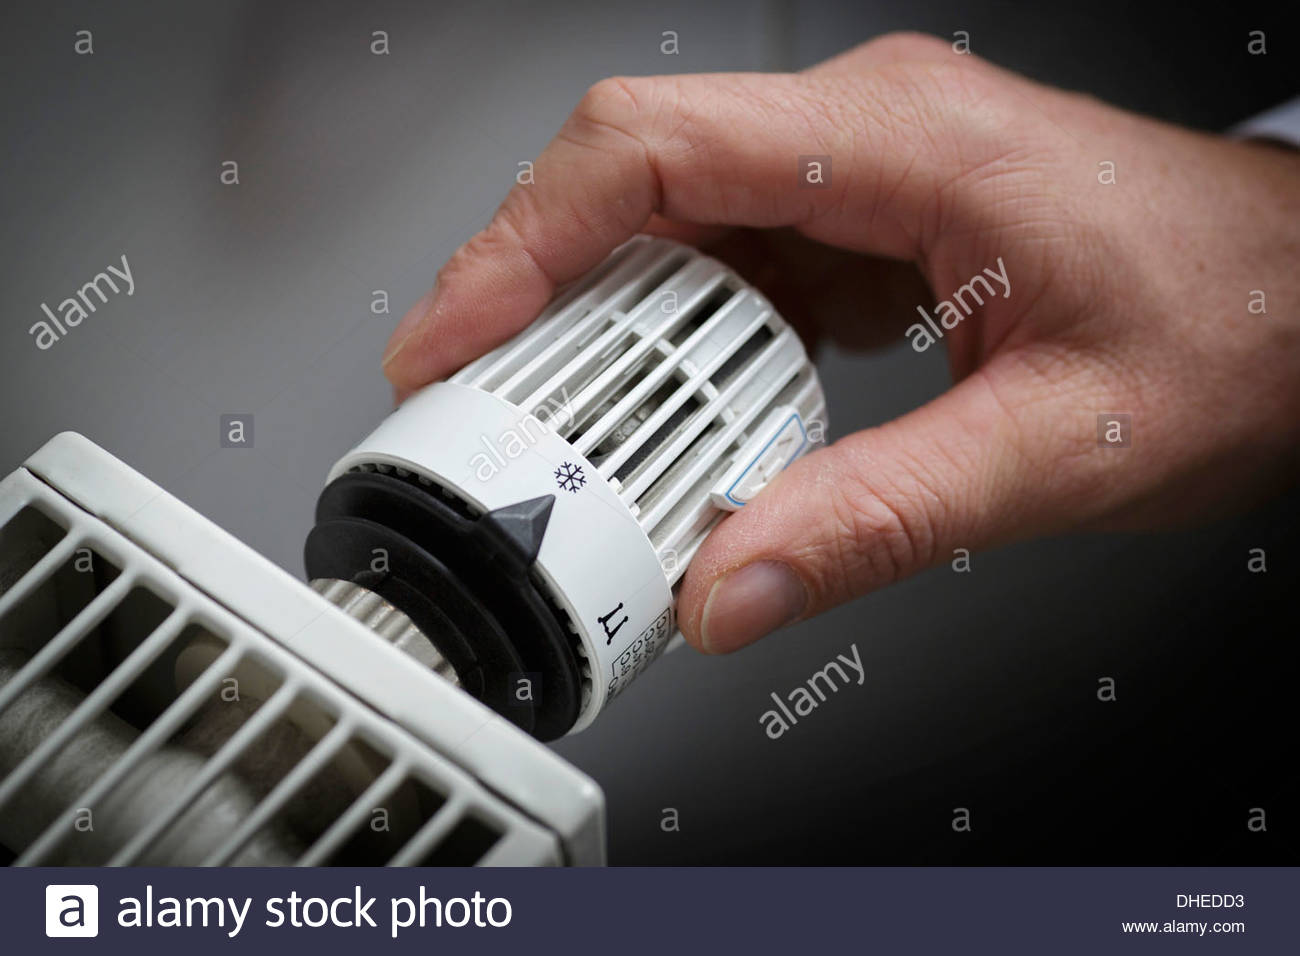 Human hand controlling a radiator - Stock Image